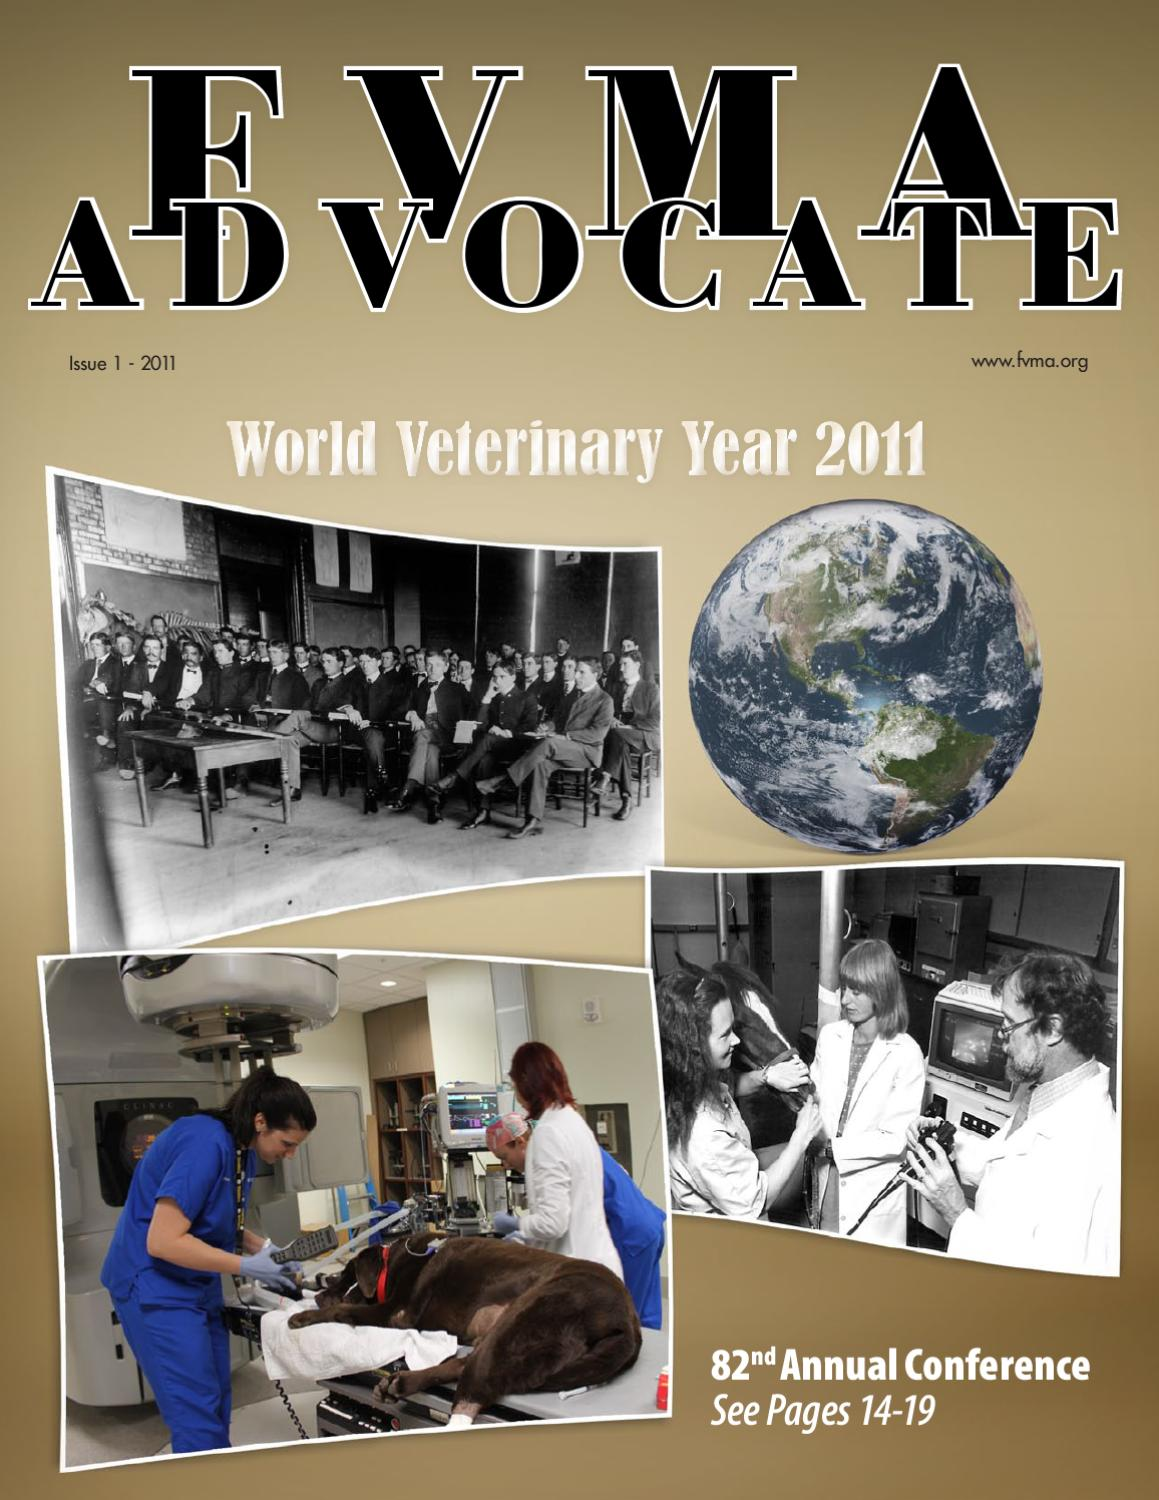 2011 Advocate Issue 1 by FVMA - issuu